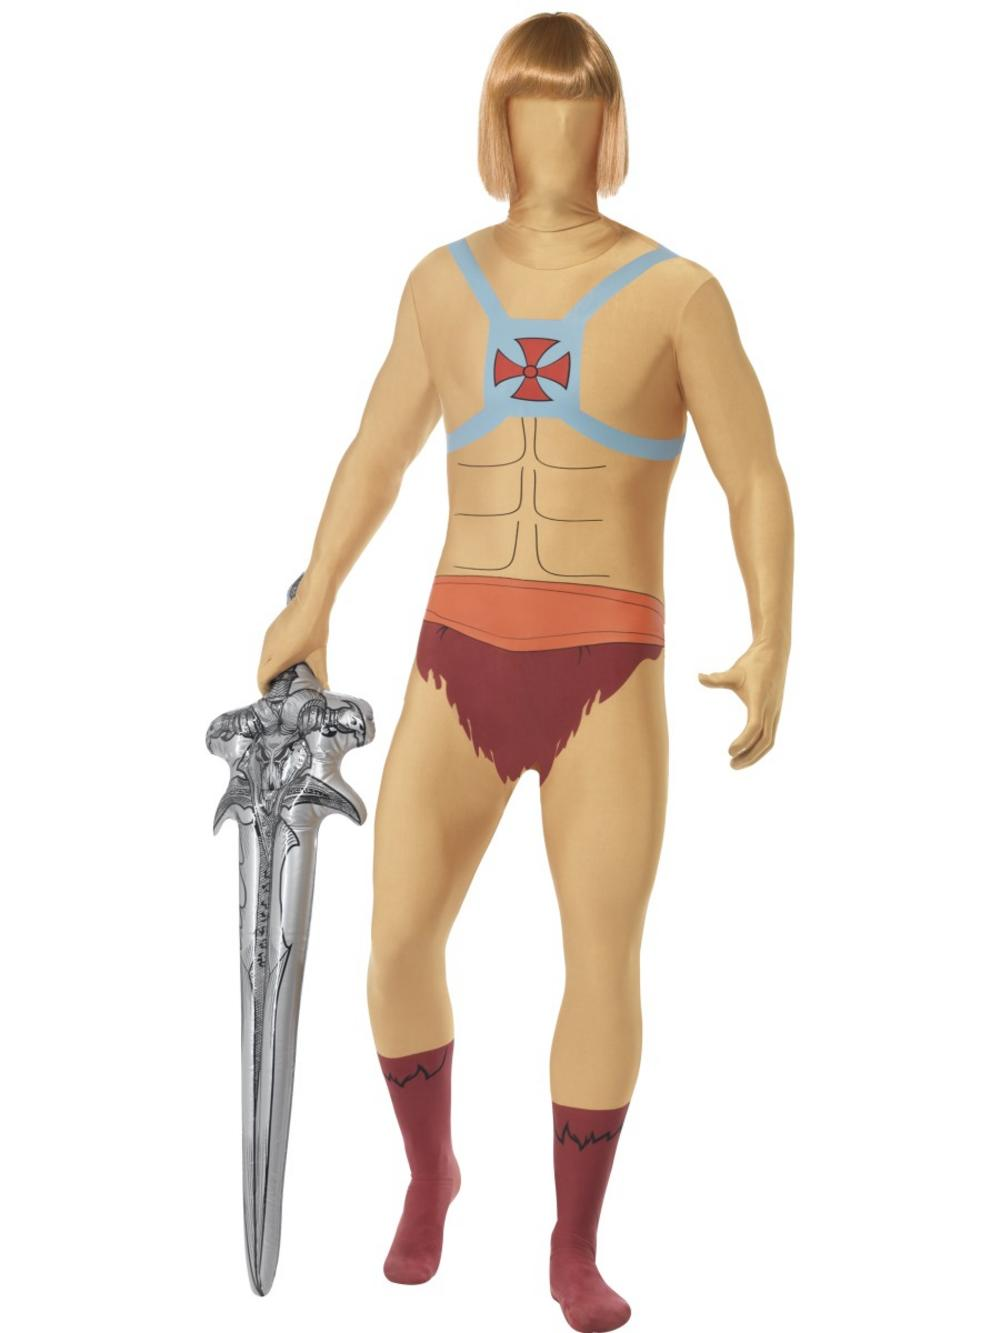 He-Man Second Skin & Inflatable Sword Costume